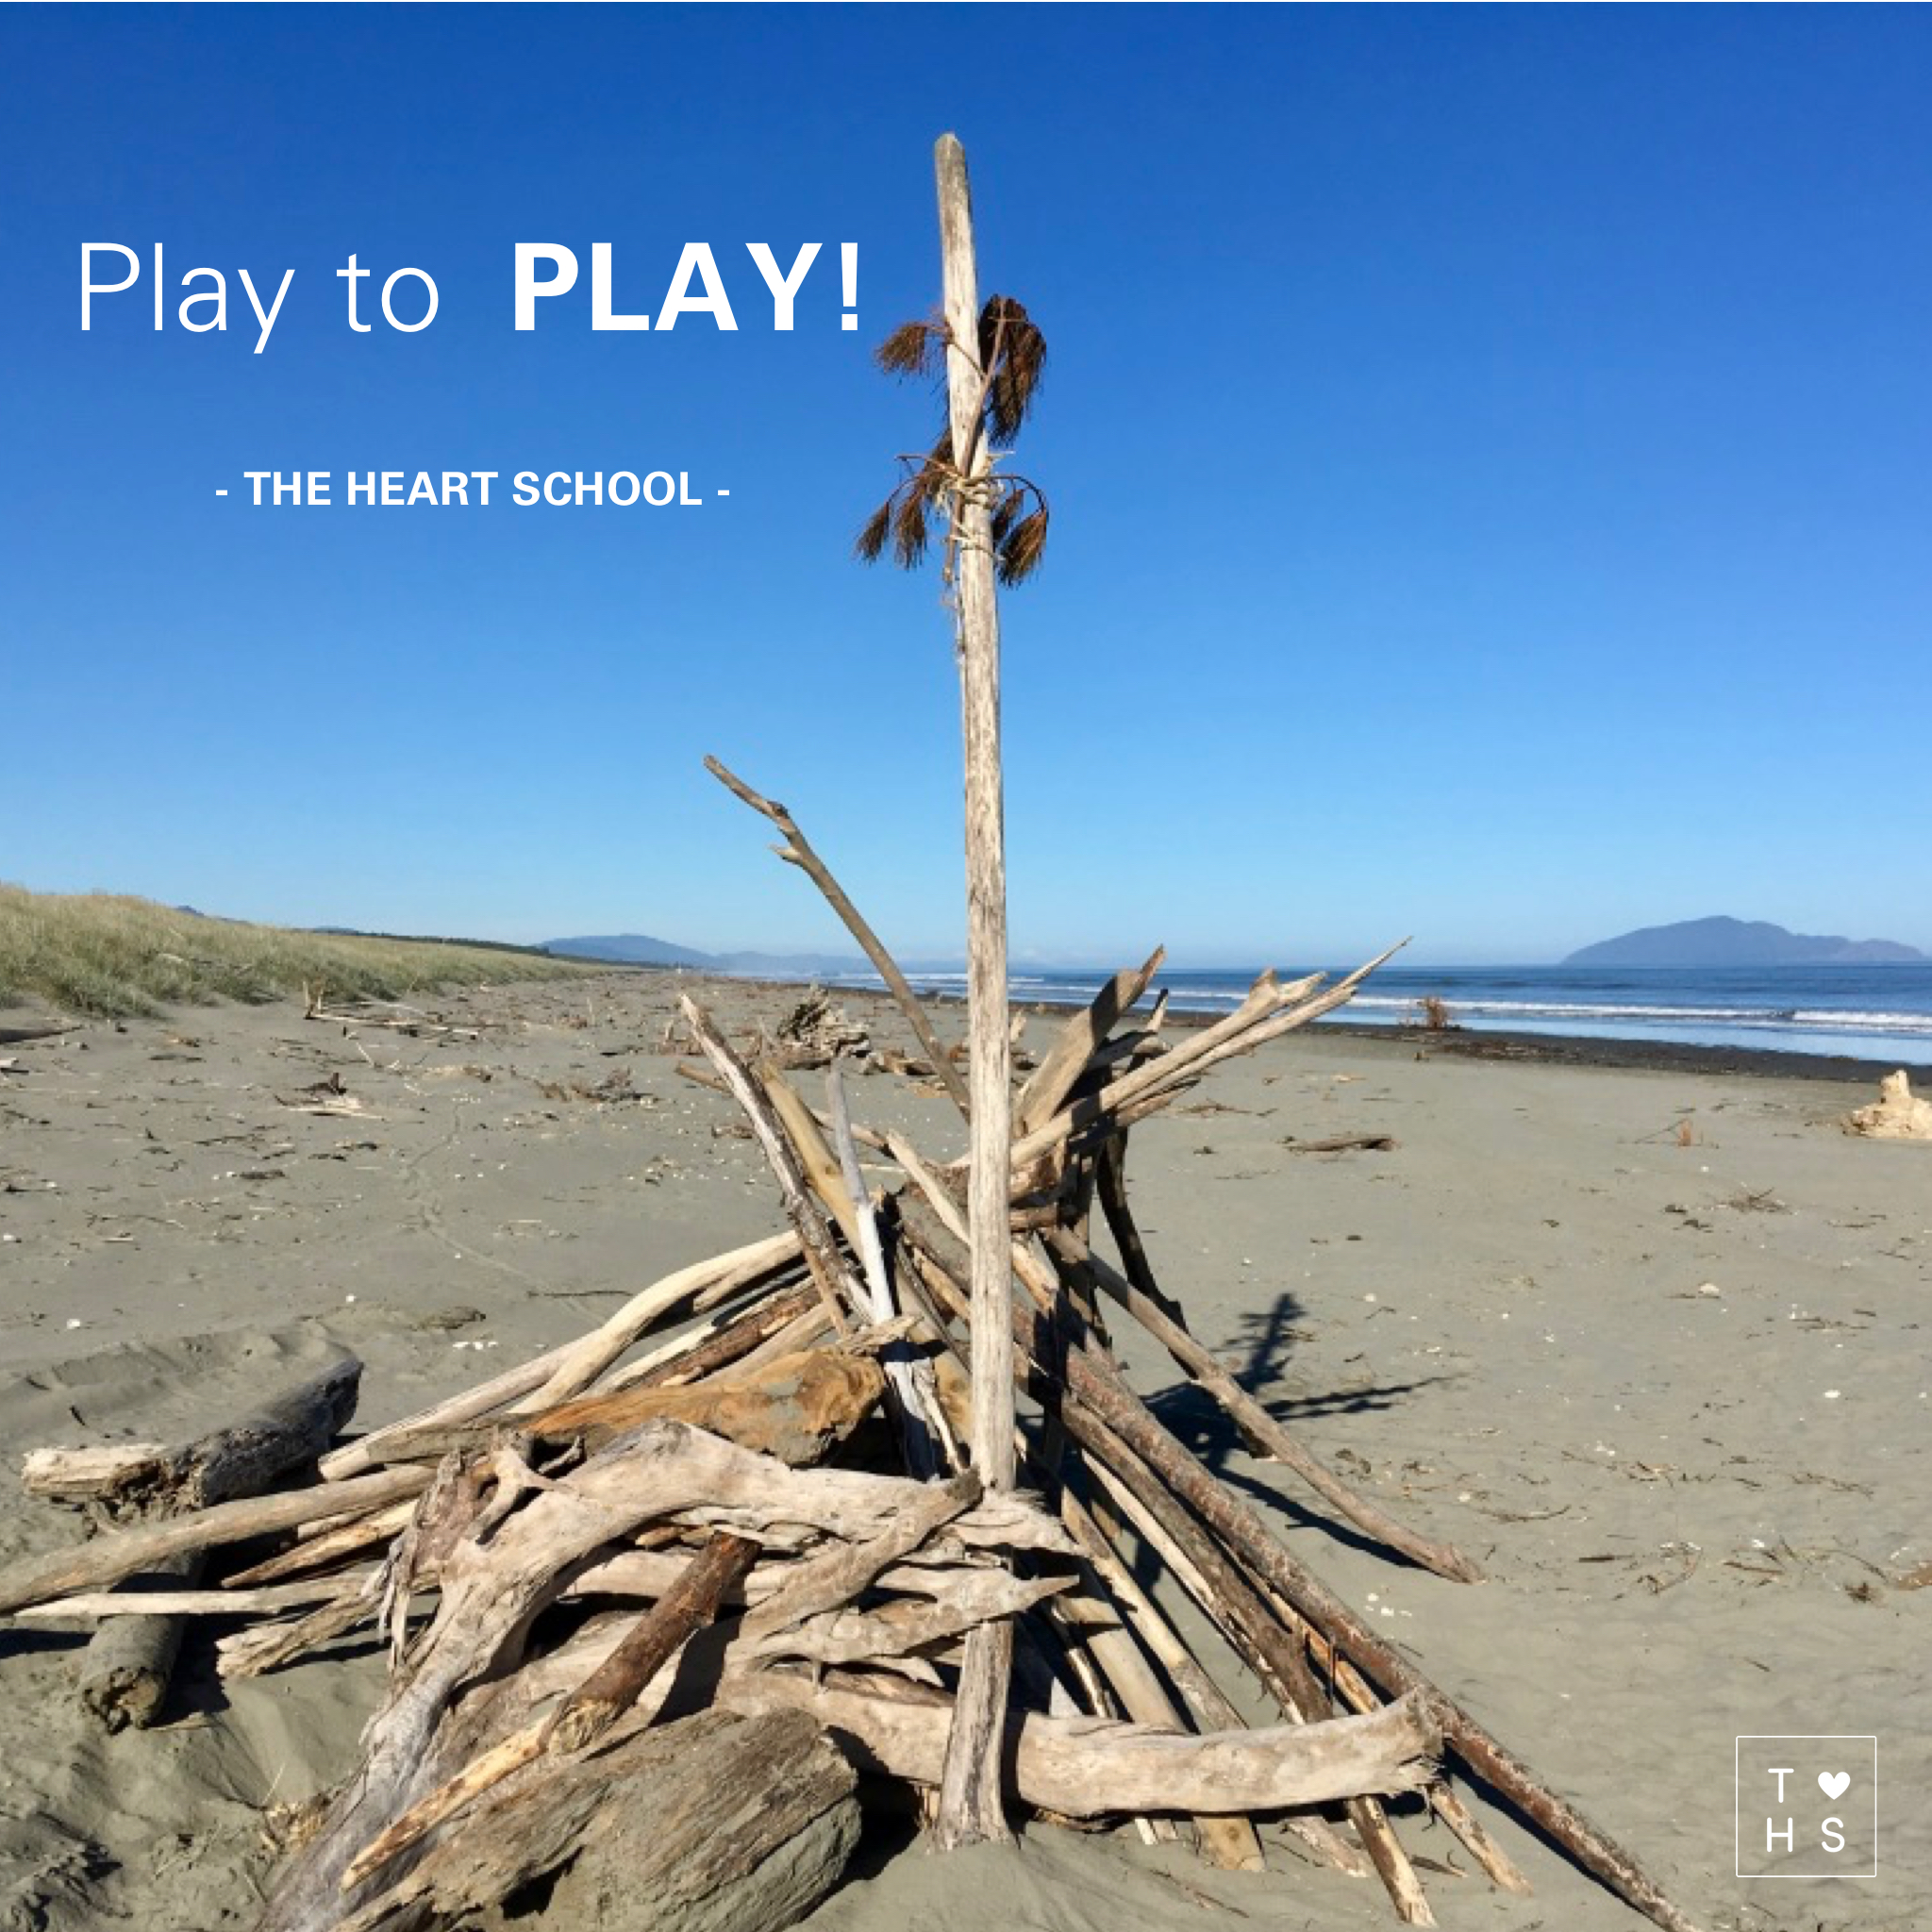 All mammals play! It is a crucial part of their development towards survival. Play is not just preserved for the young. We need play in all stages of our life. Adults tend to meet that need through playing sports. But sports is a very different kind of play. Most sports people play to win. What if for once, we do what children do and we play to play. We play for the sake of the pure pleasure of using our creativity and imagination, rather than for the outcome of a victory or defeat. Go out and play, to play!